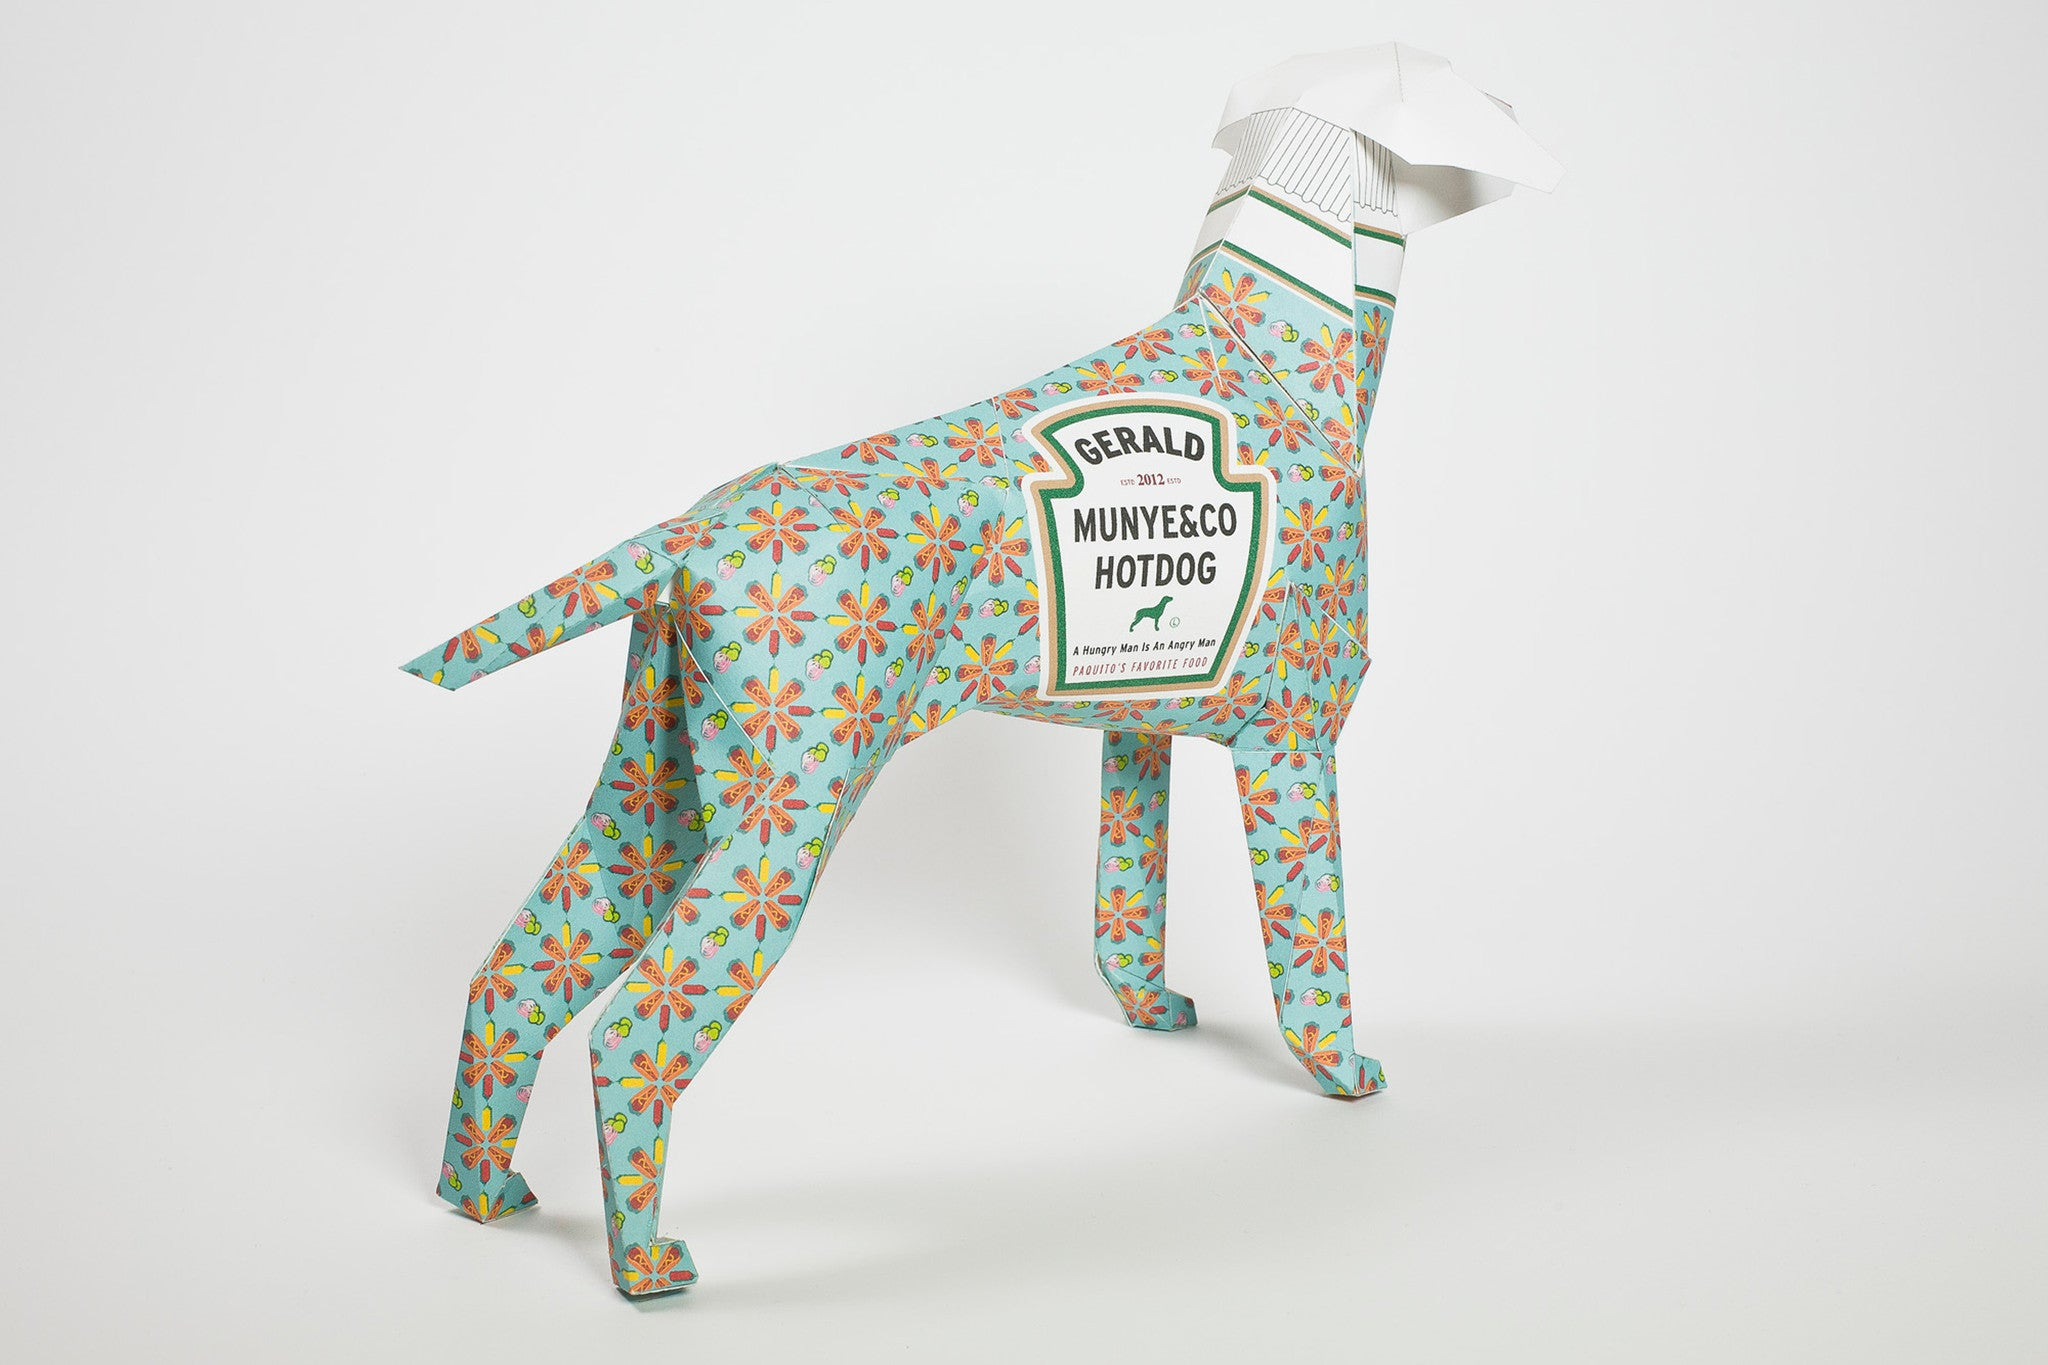 061 HOT DOG GERALD BY MUNYE & CO